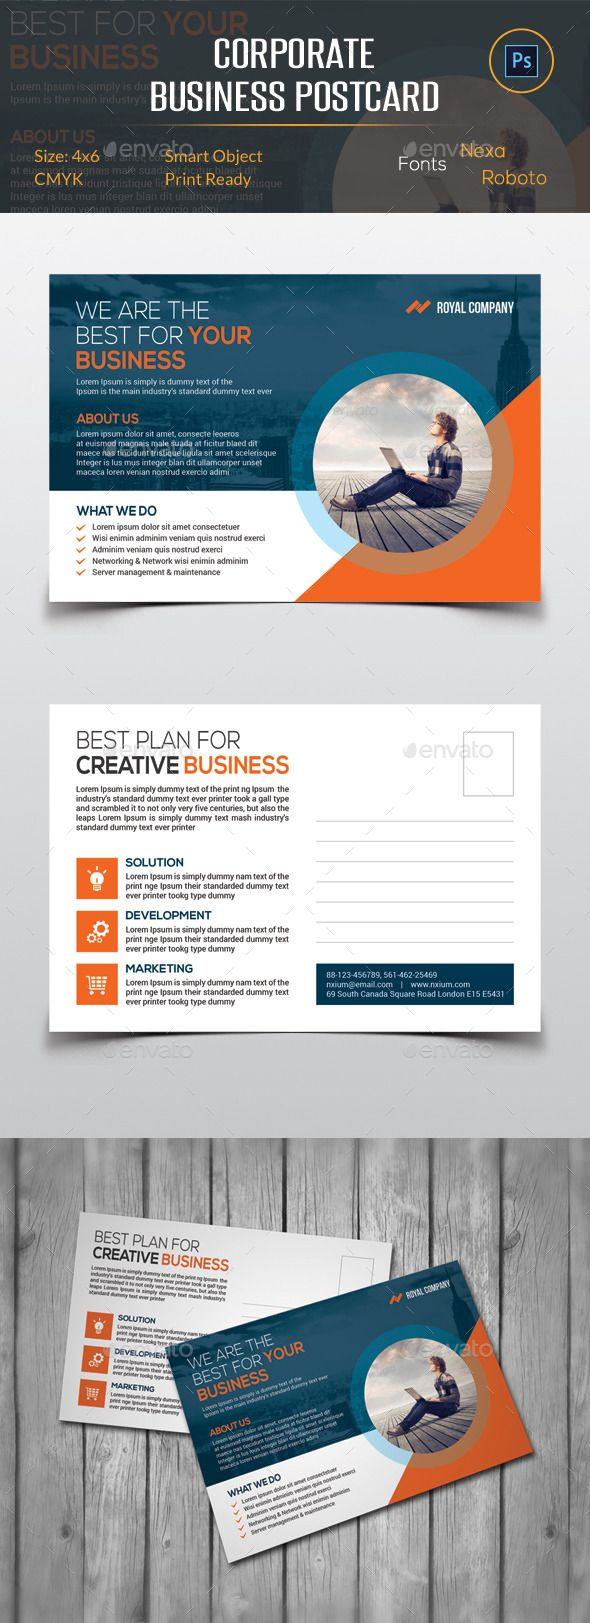 corporate business postcard - Postcard Design Ideas